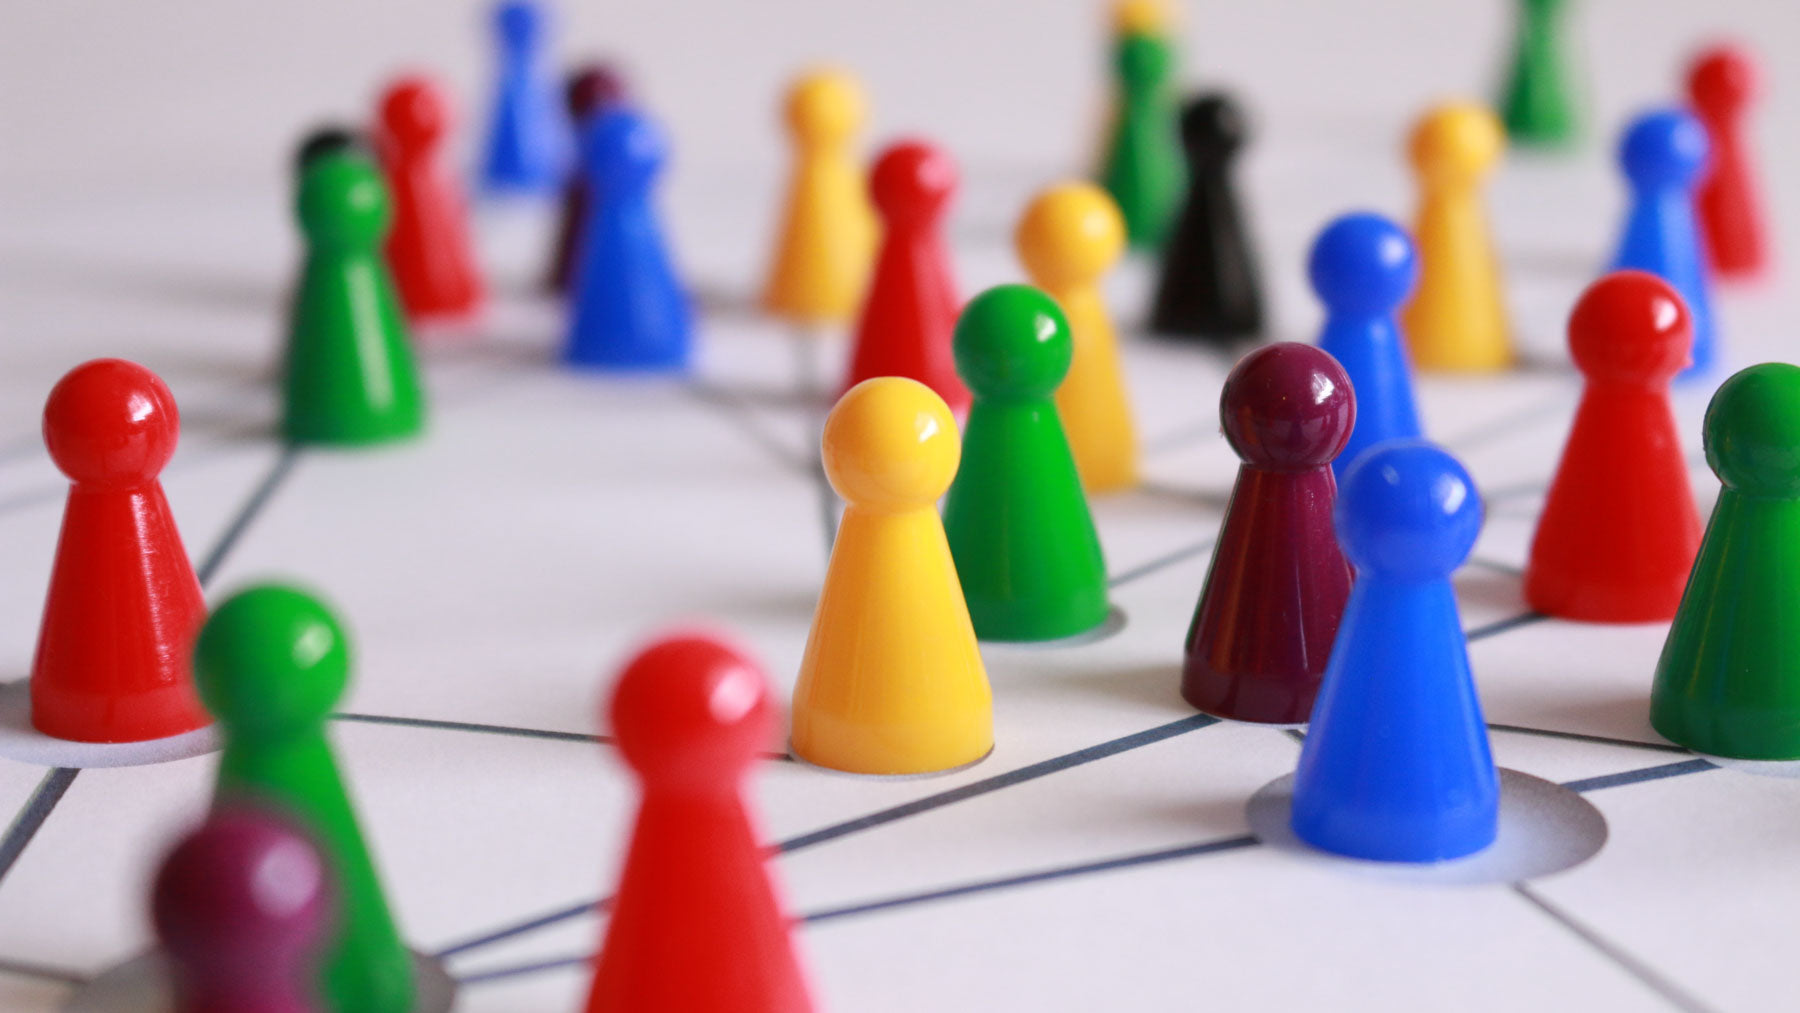 coloured plastic people-shaped counters grouped together to symbolise community